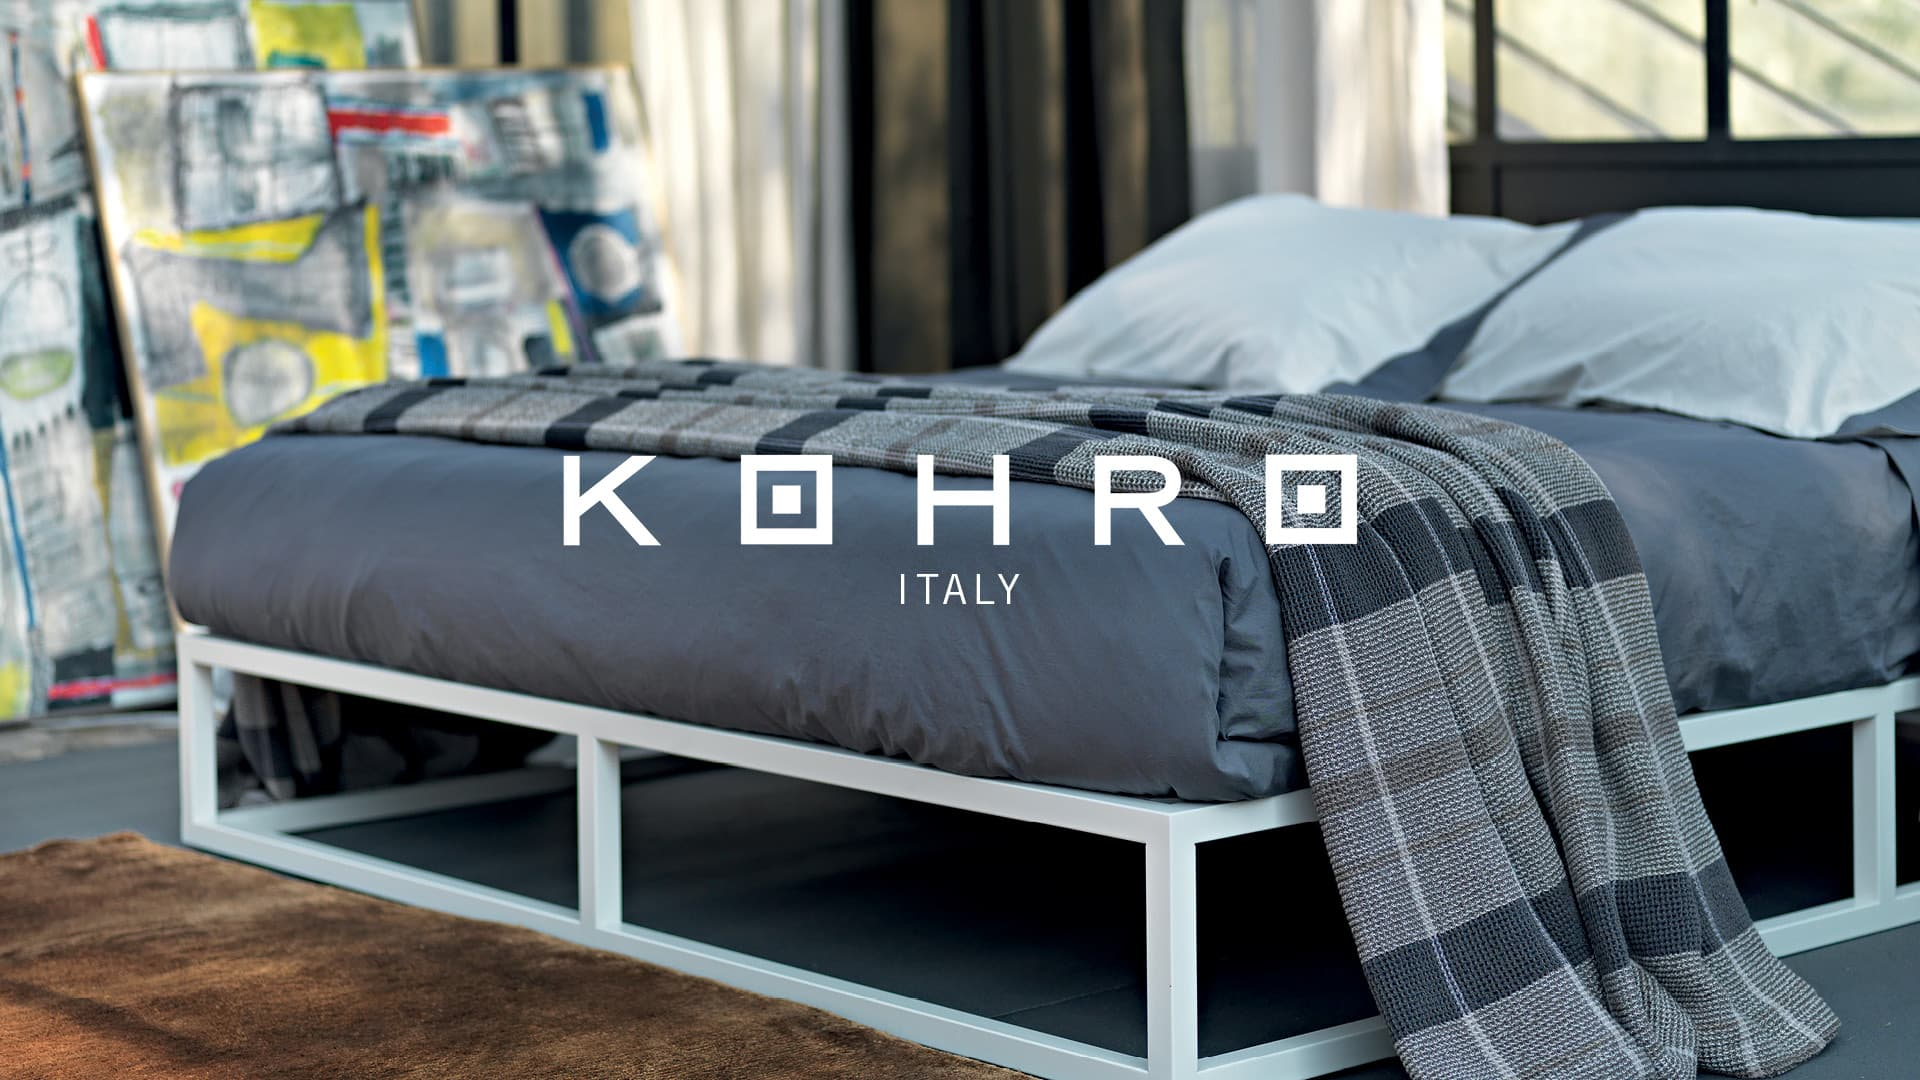 Kohro - home decorating fabric